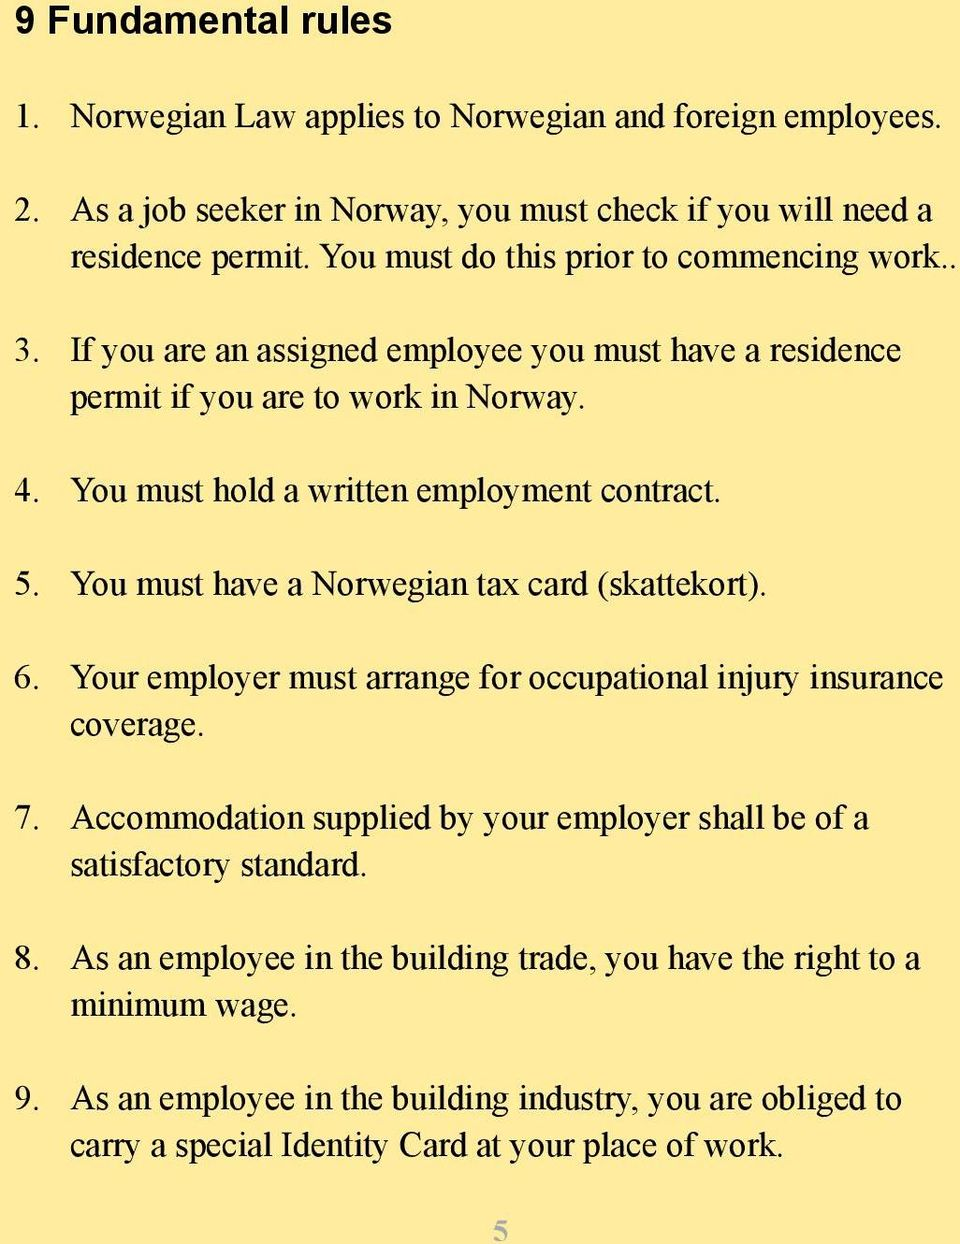 5. You must have a Norwegian tax card (skattekort). 6. Your employer must arrange for occupational injury insurance coverage. 7.